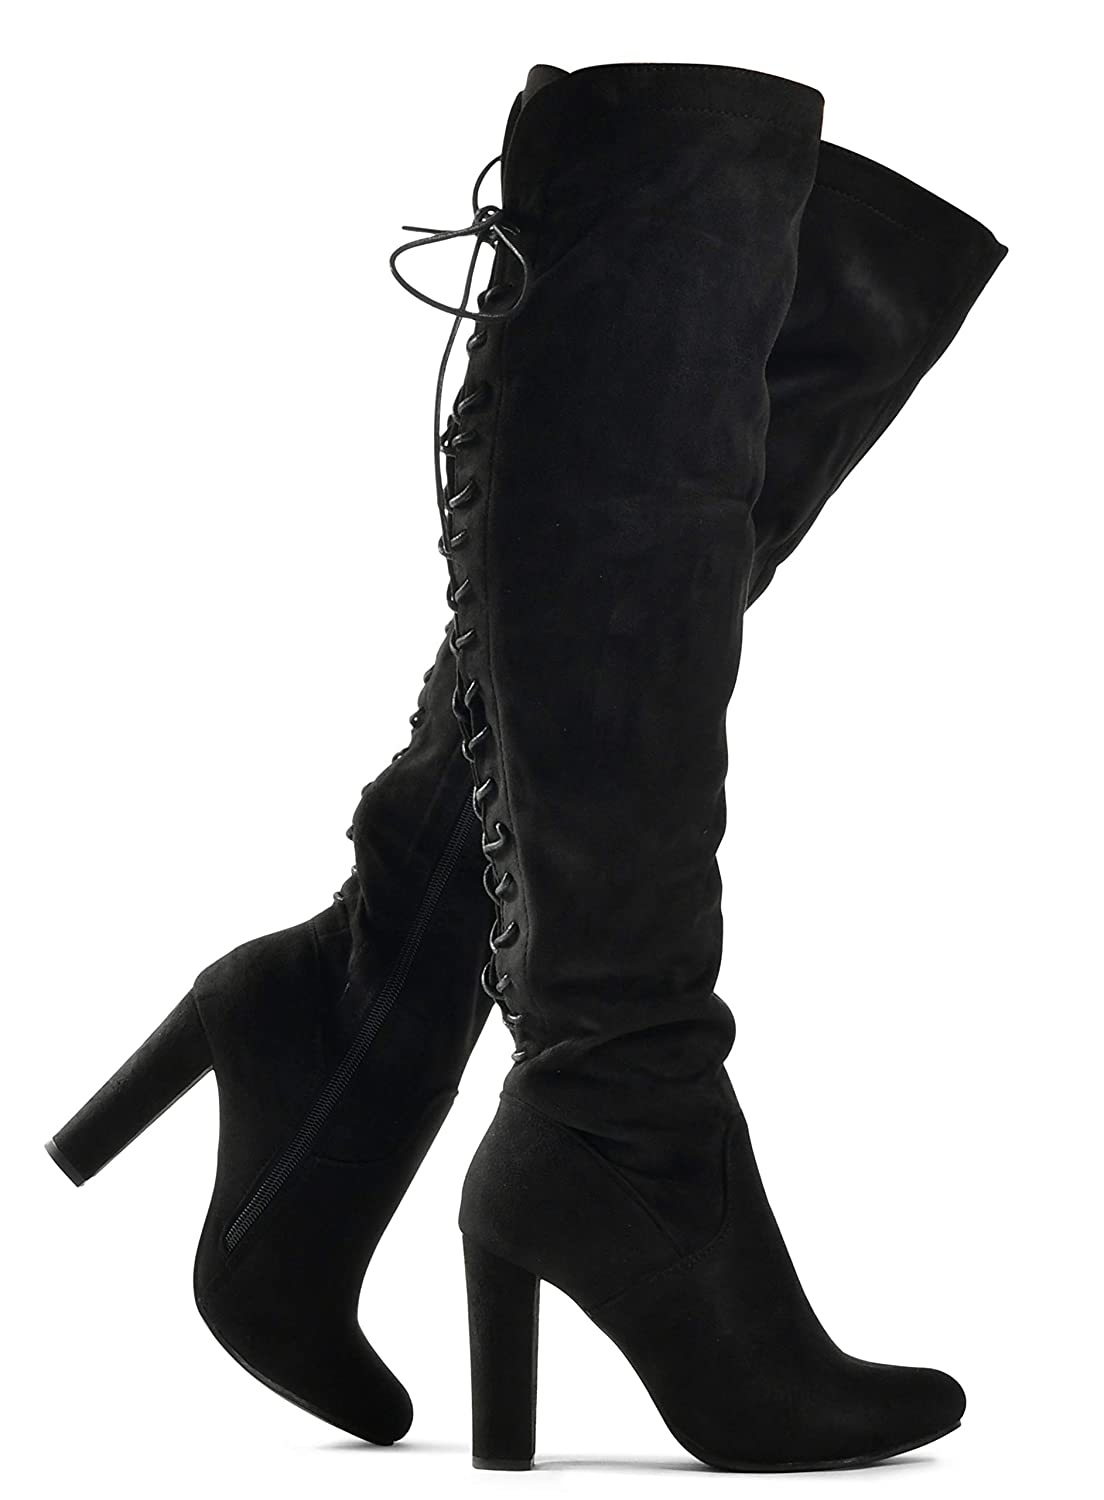 847464981f0 Zoe Stretch Thigh High Boots - Trendy Comfortable Block Heel - Over The  Knee Pullon Sexy Back Lace Up